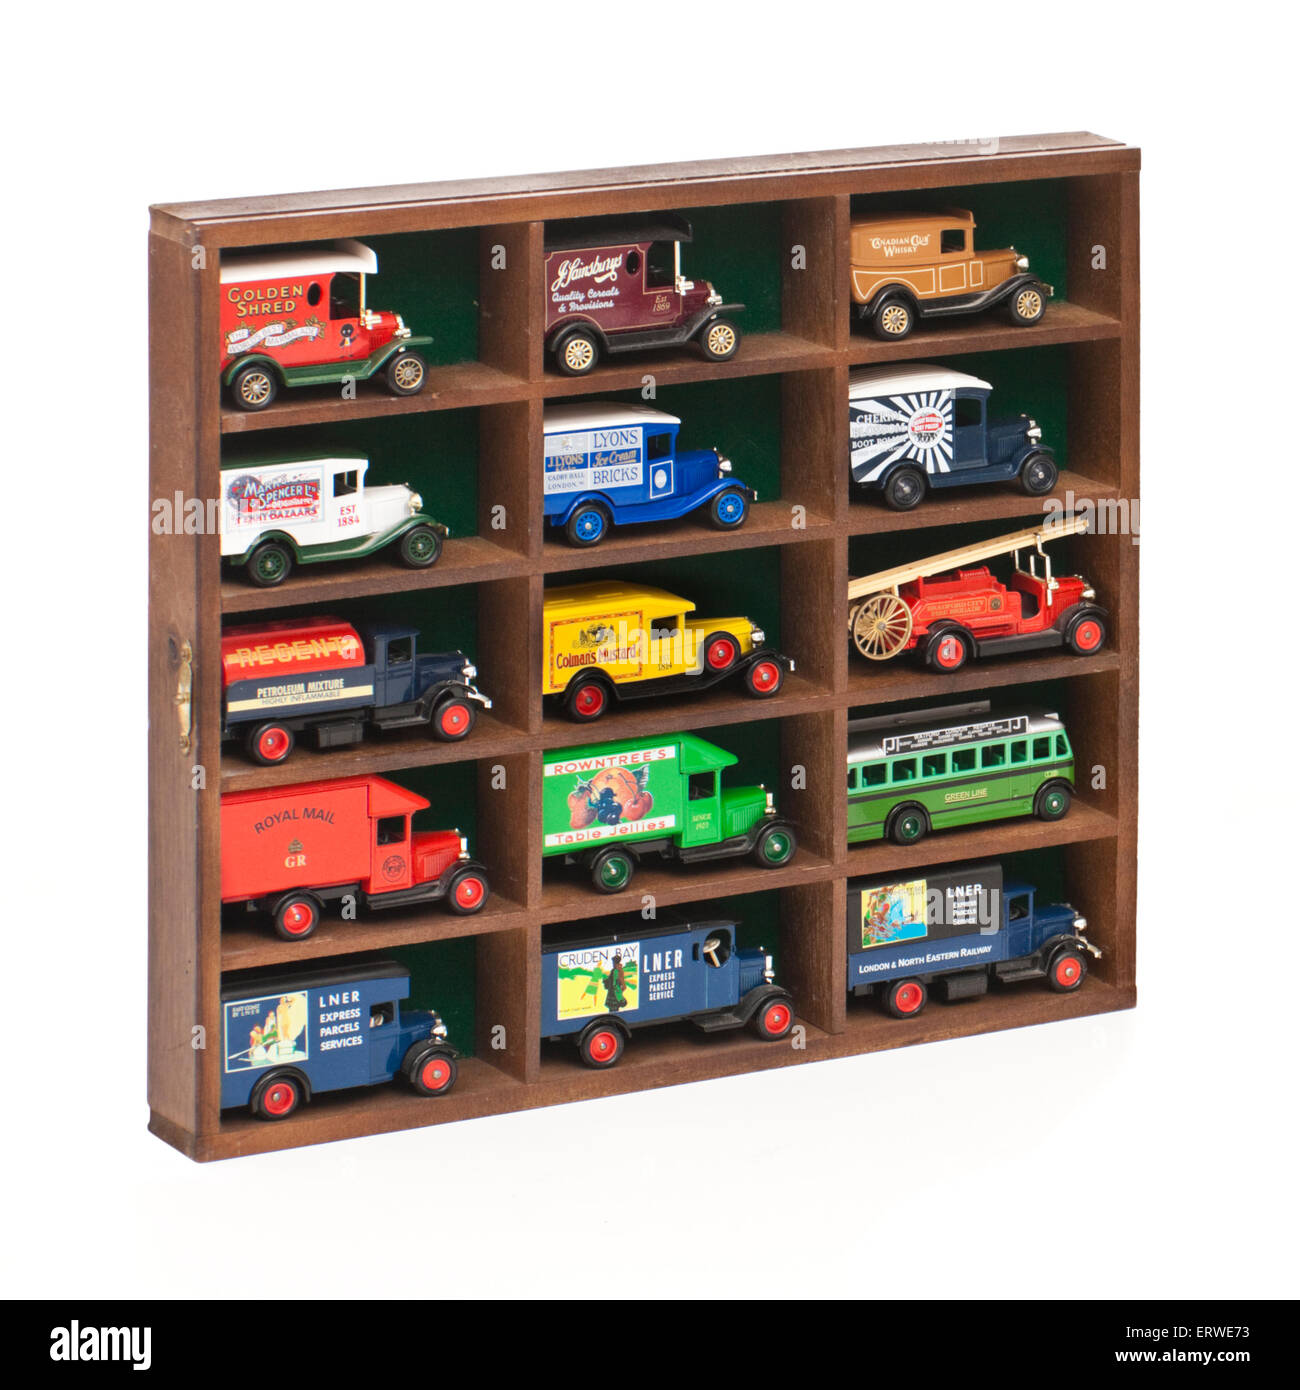 Collection of vintage diecast model cars / vans in display cabinet Stock Photo